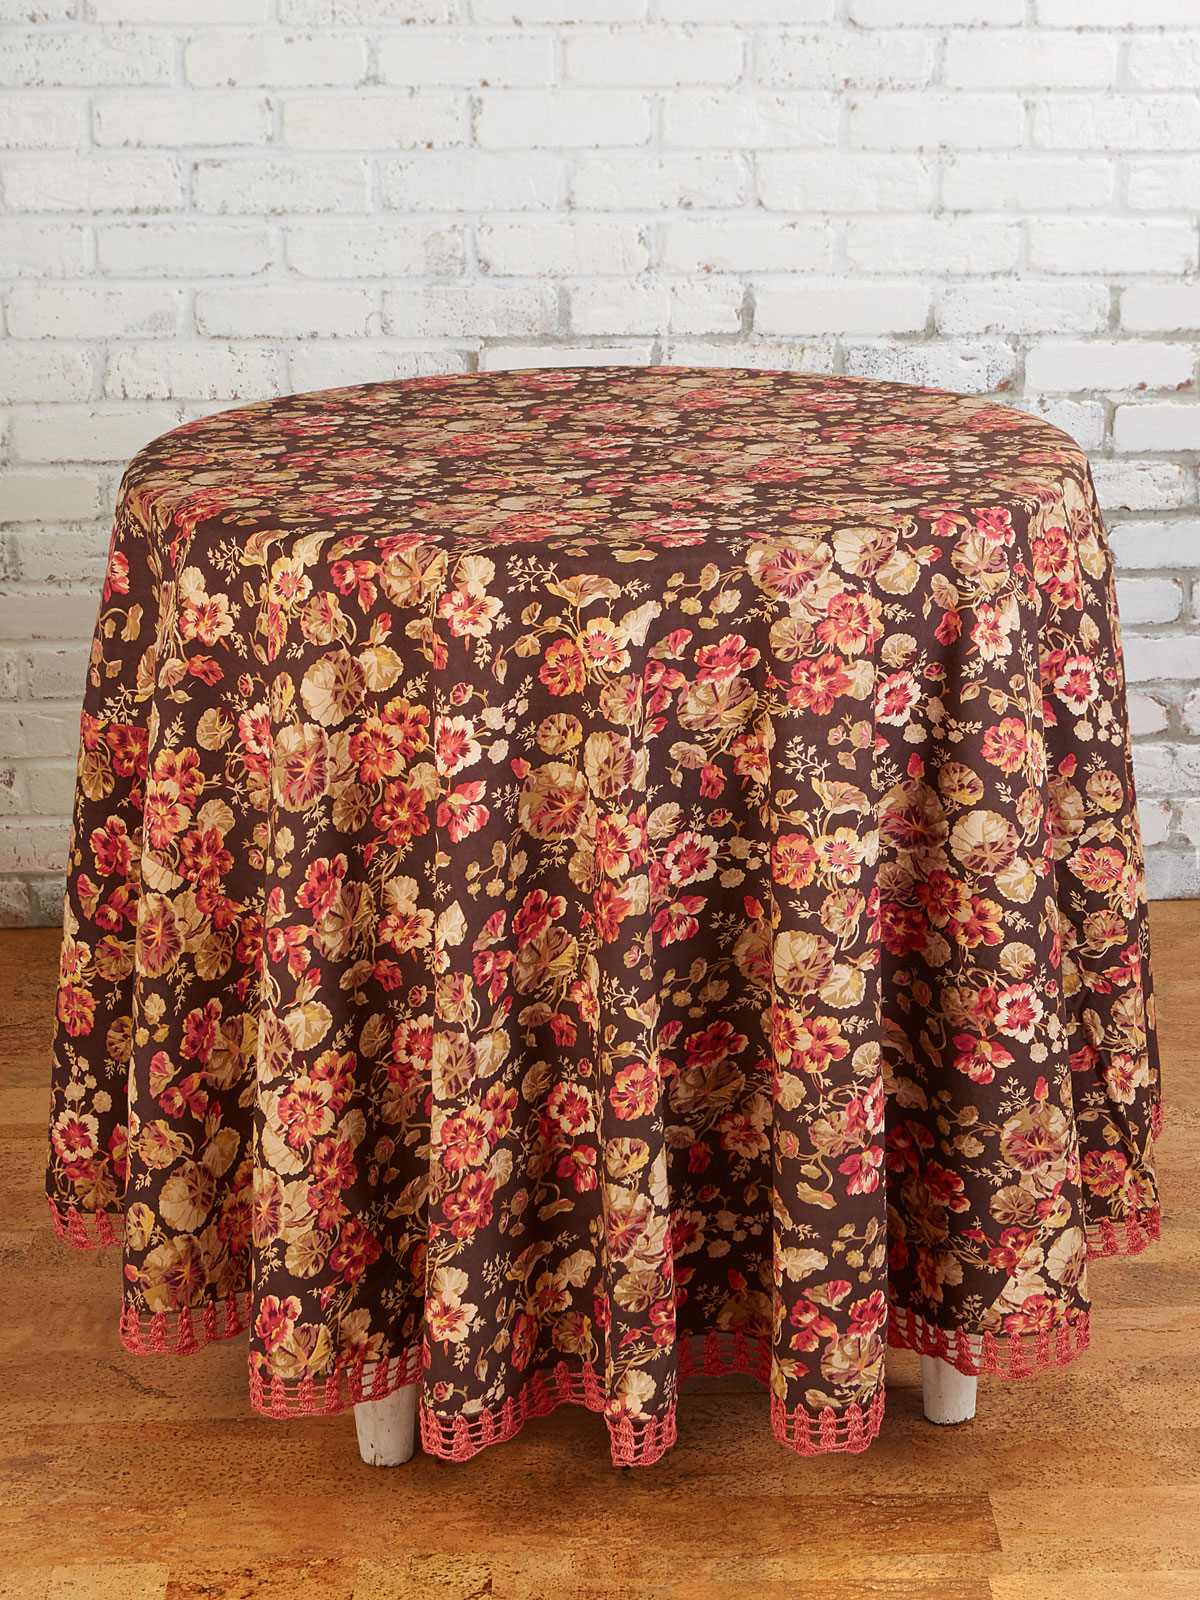 Nasturtium Crochet Round Tablecloth